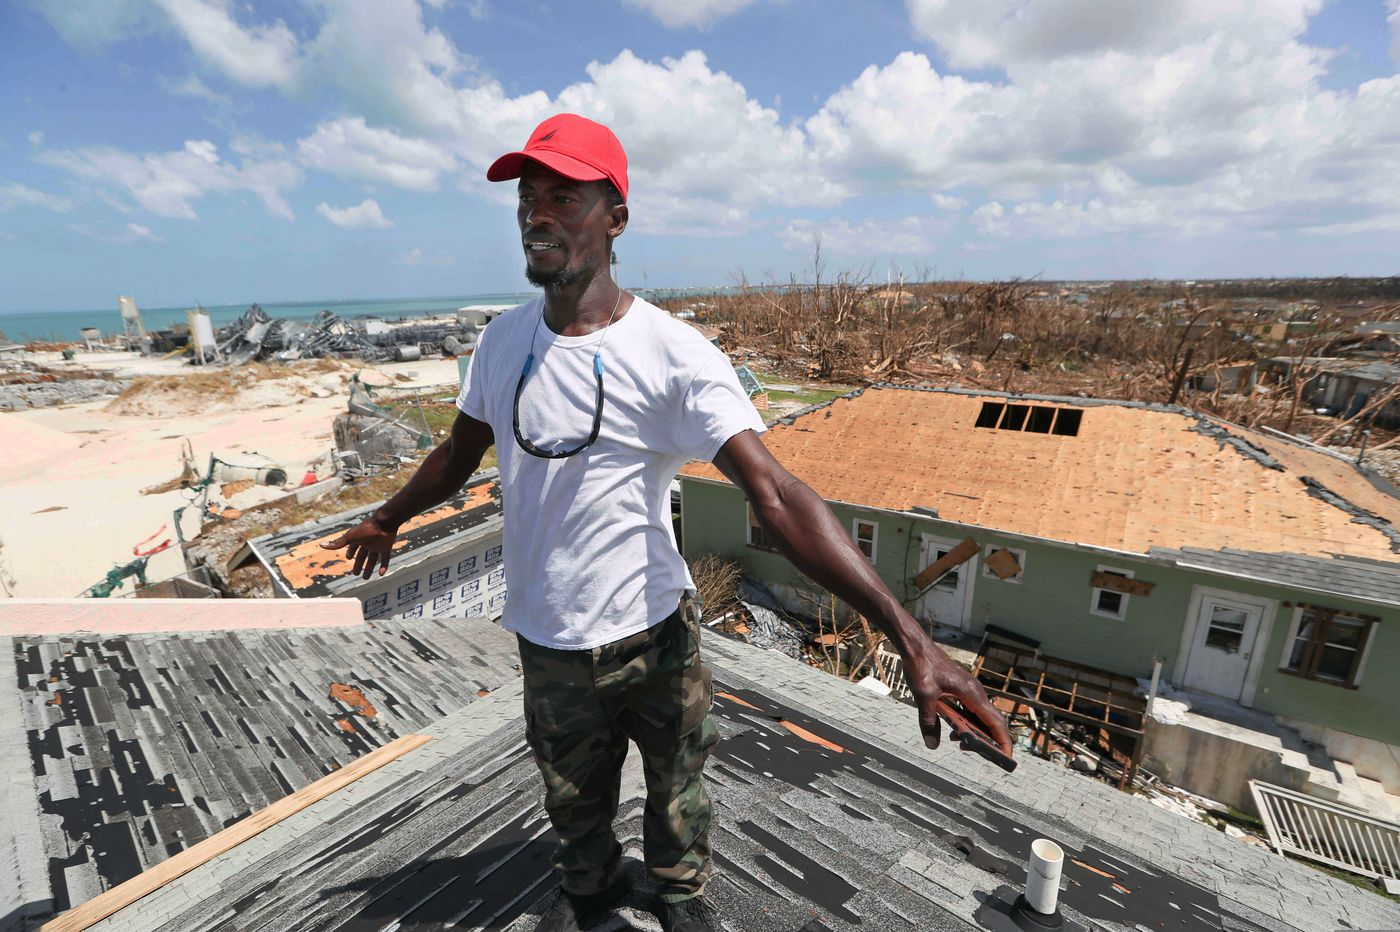 Silence, devastation mark Bahamas town; but some are staying